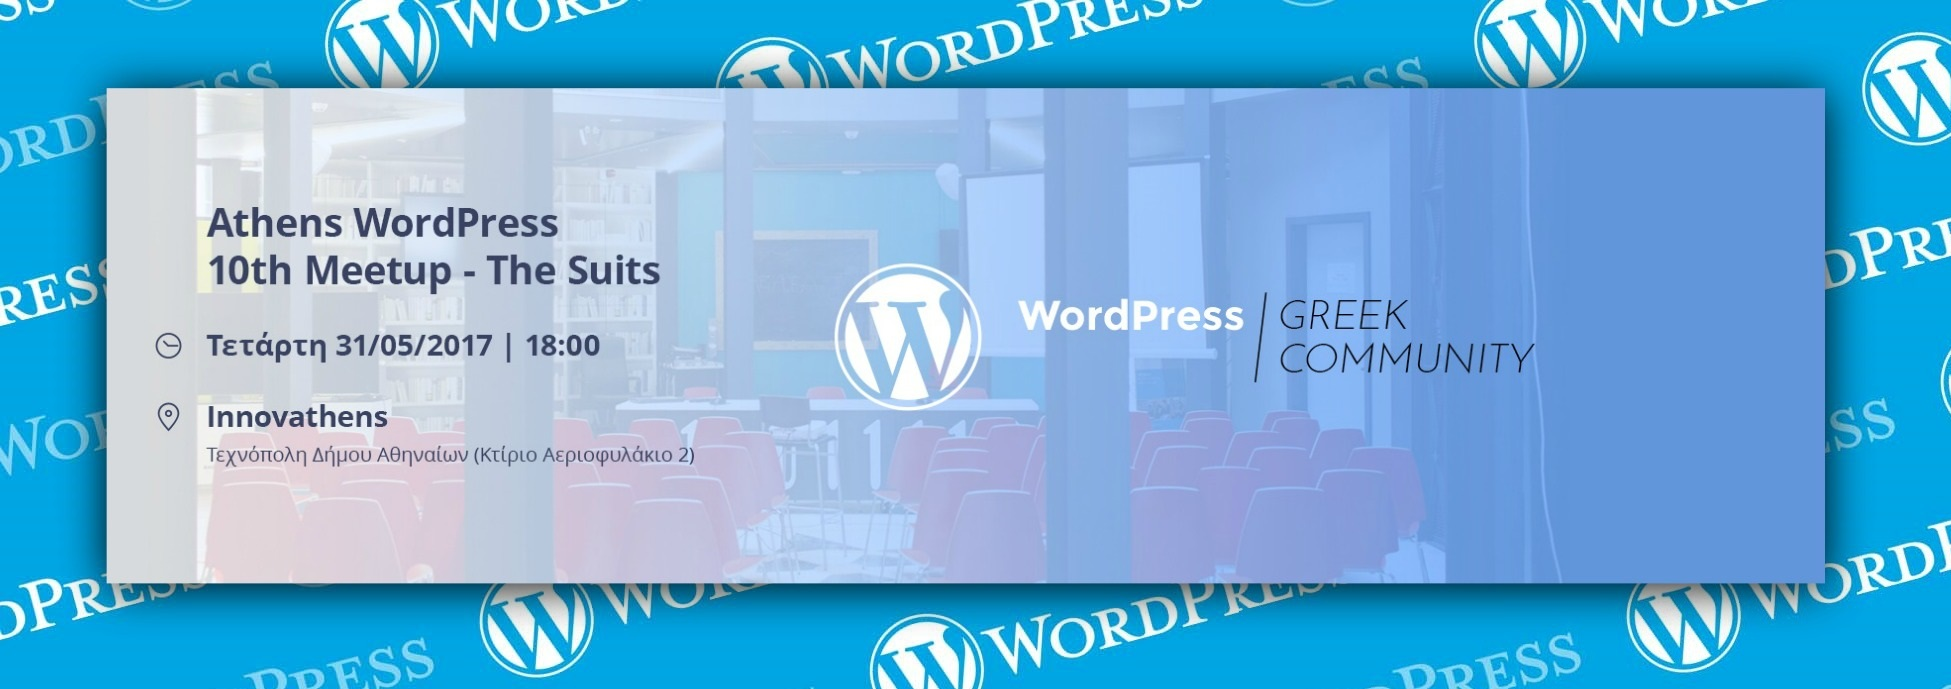 Wordpress Athens 10th Meetup